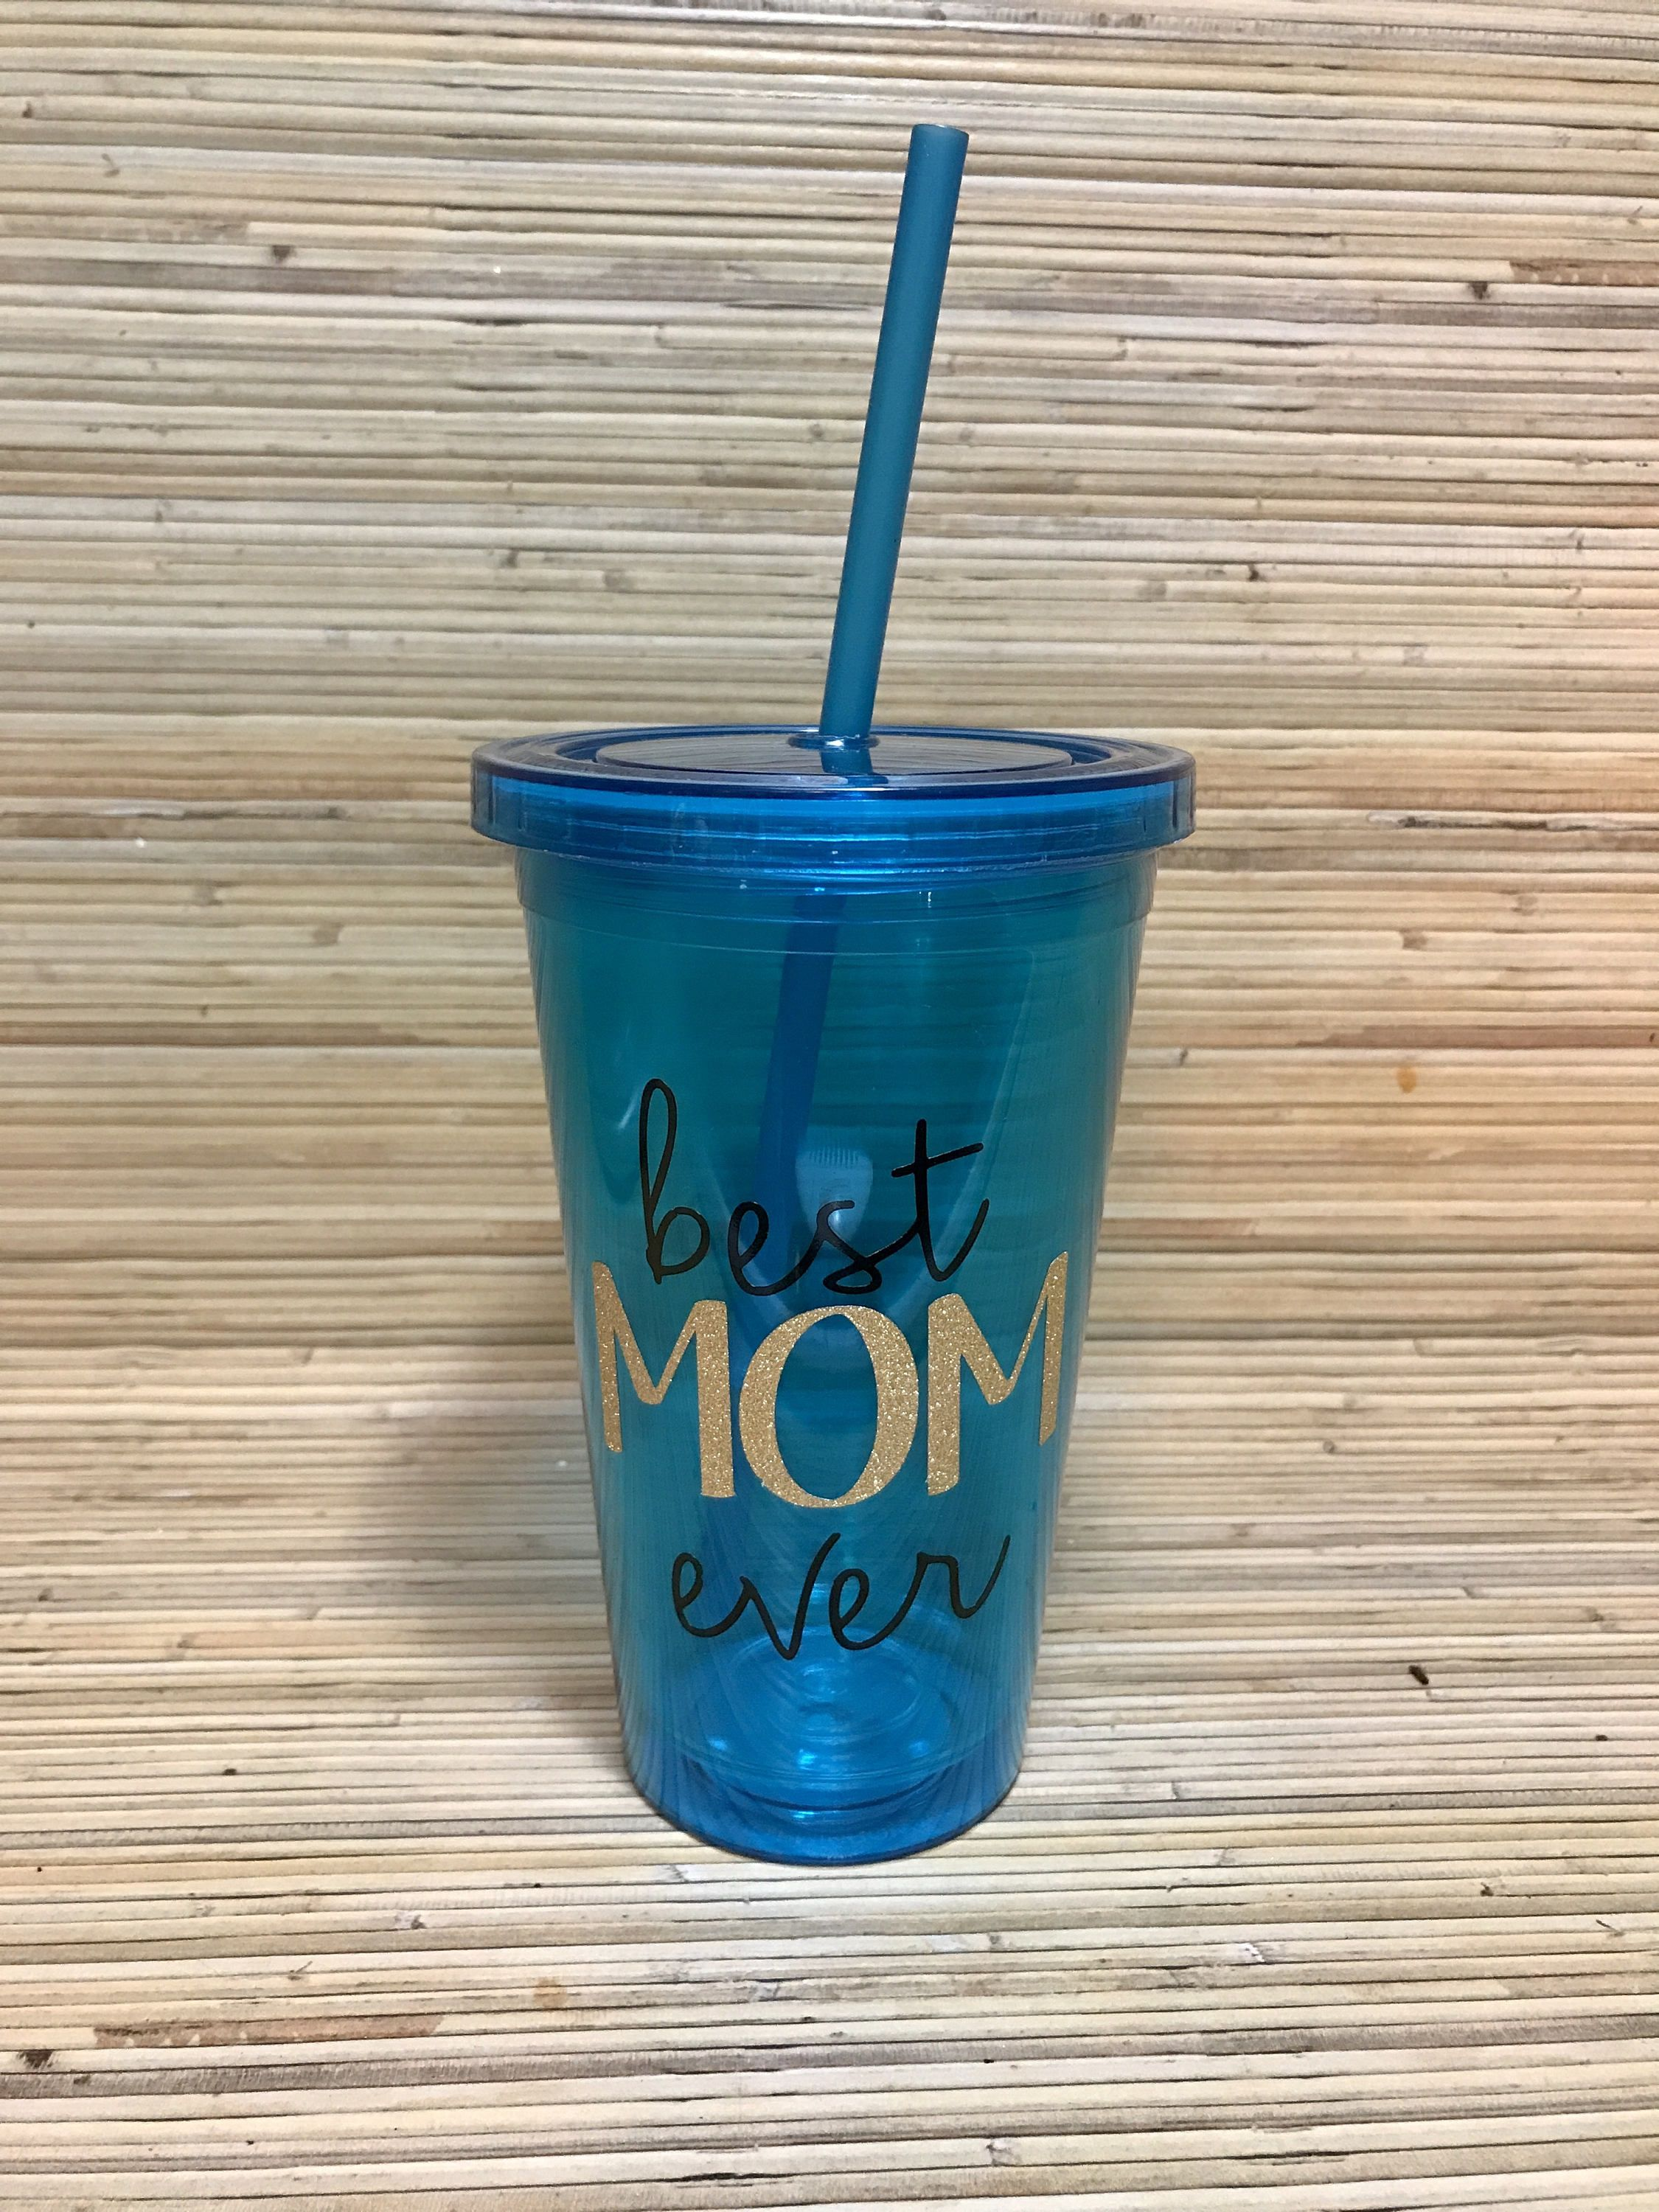 Best mom ever tumblermothers day giftcute tumbler by